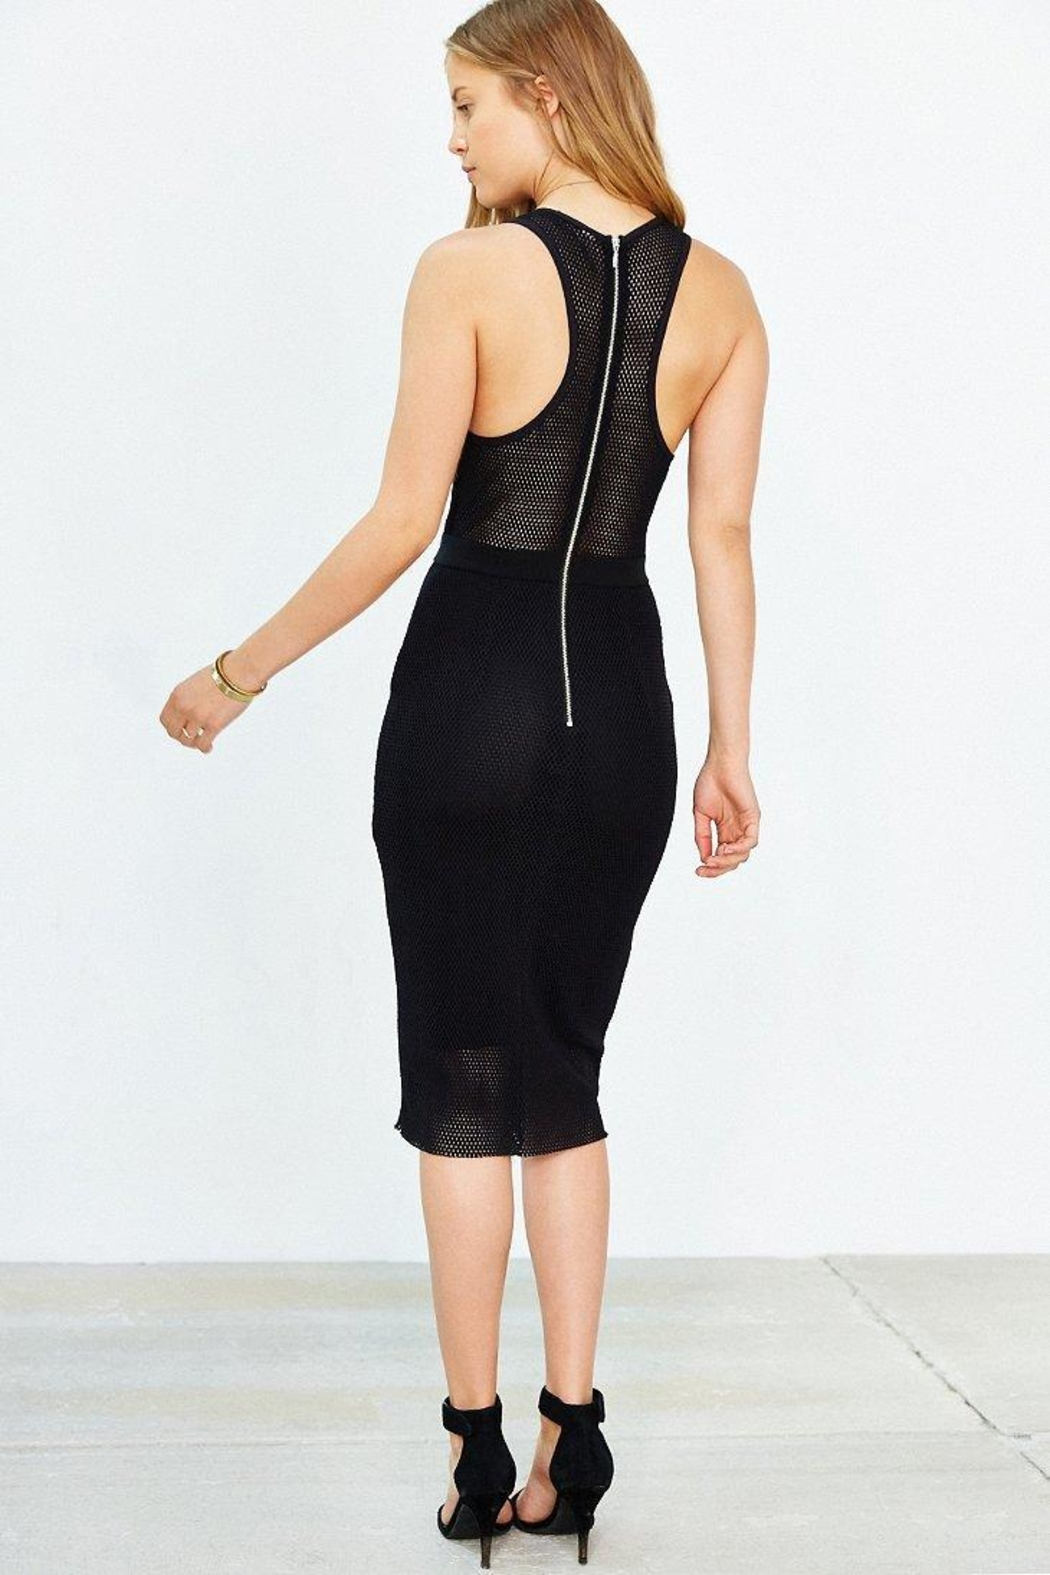 bec & bridge Noir Dress - Front Full Image